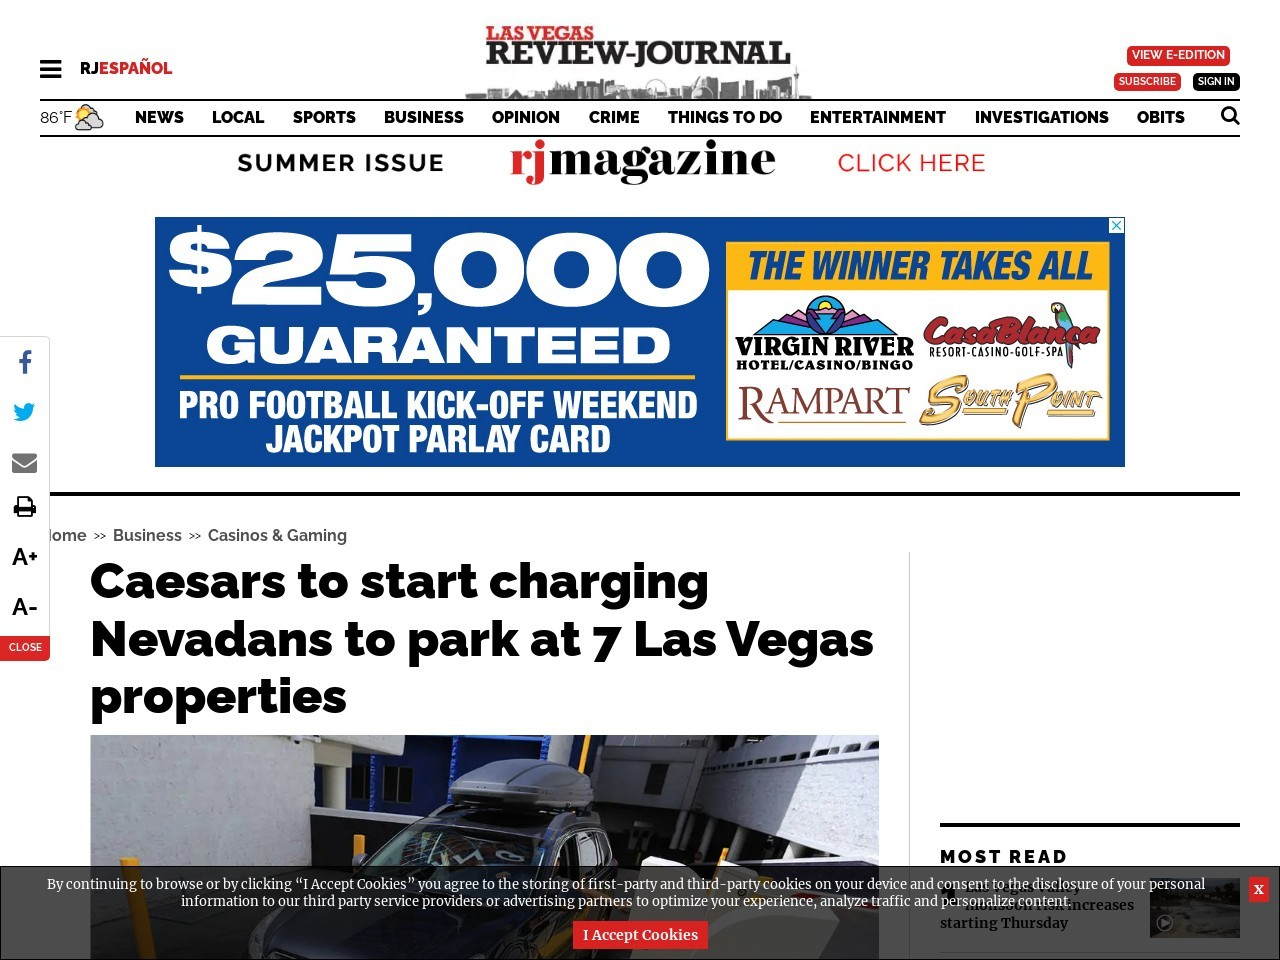 Caesars to start charging Nevadans to park at 7 Las Vegas properties